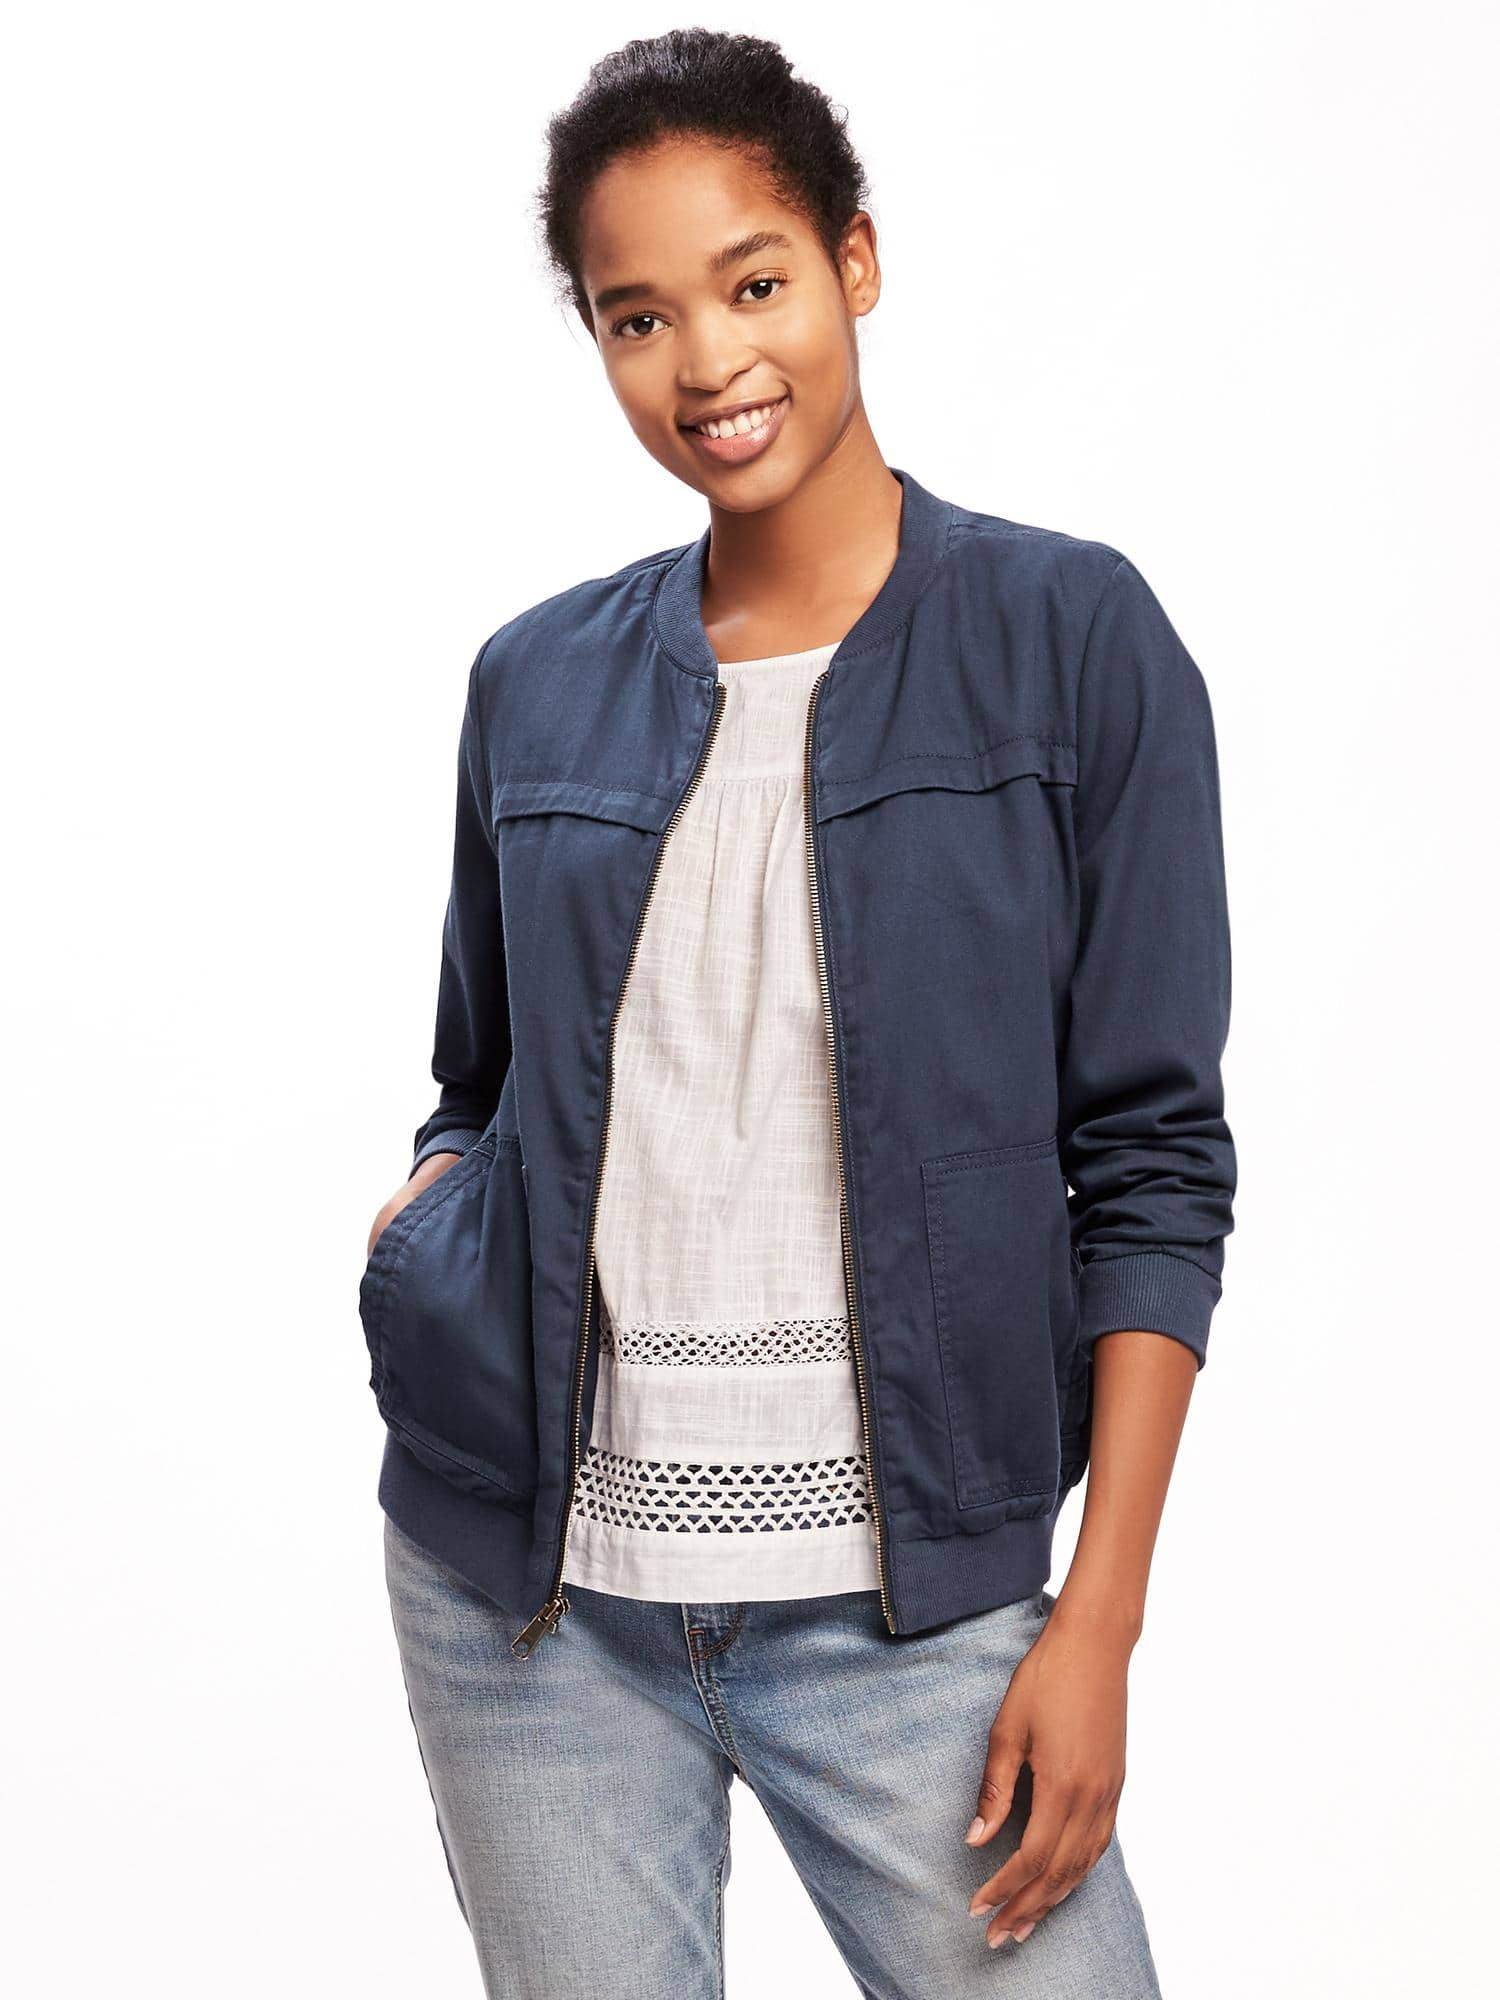 Love This Twill Bomber Jacket For Women From Old Navy The Color Is Nice And I Like The Looser Fit Fall Capsule Wardrobe Jackets For Women Bomber Jacket [ 2000 x 1500 Pixel ]